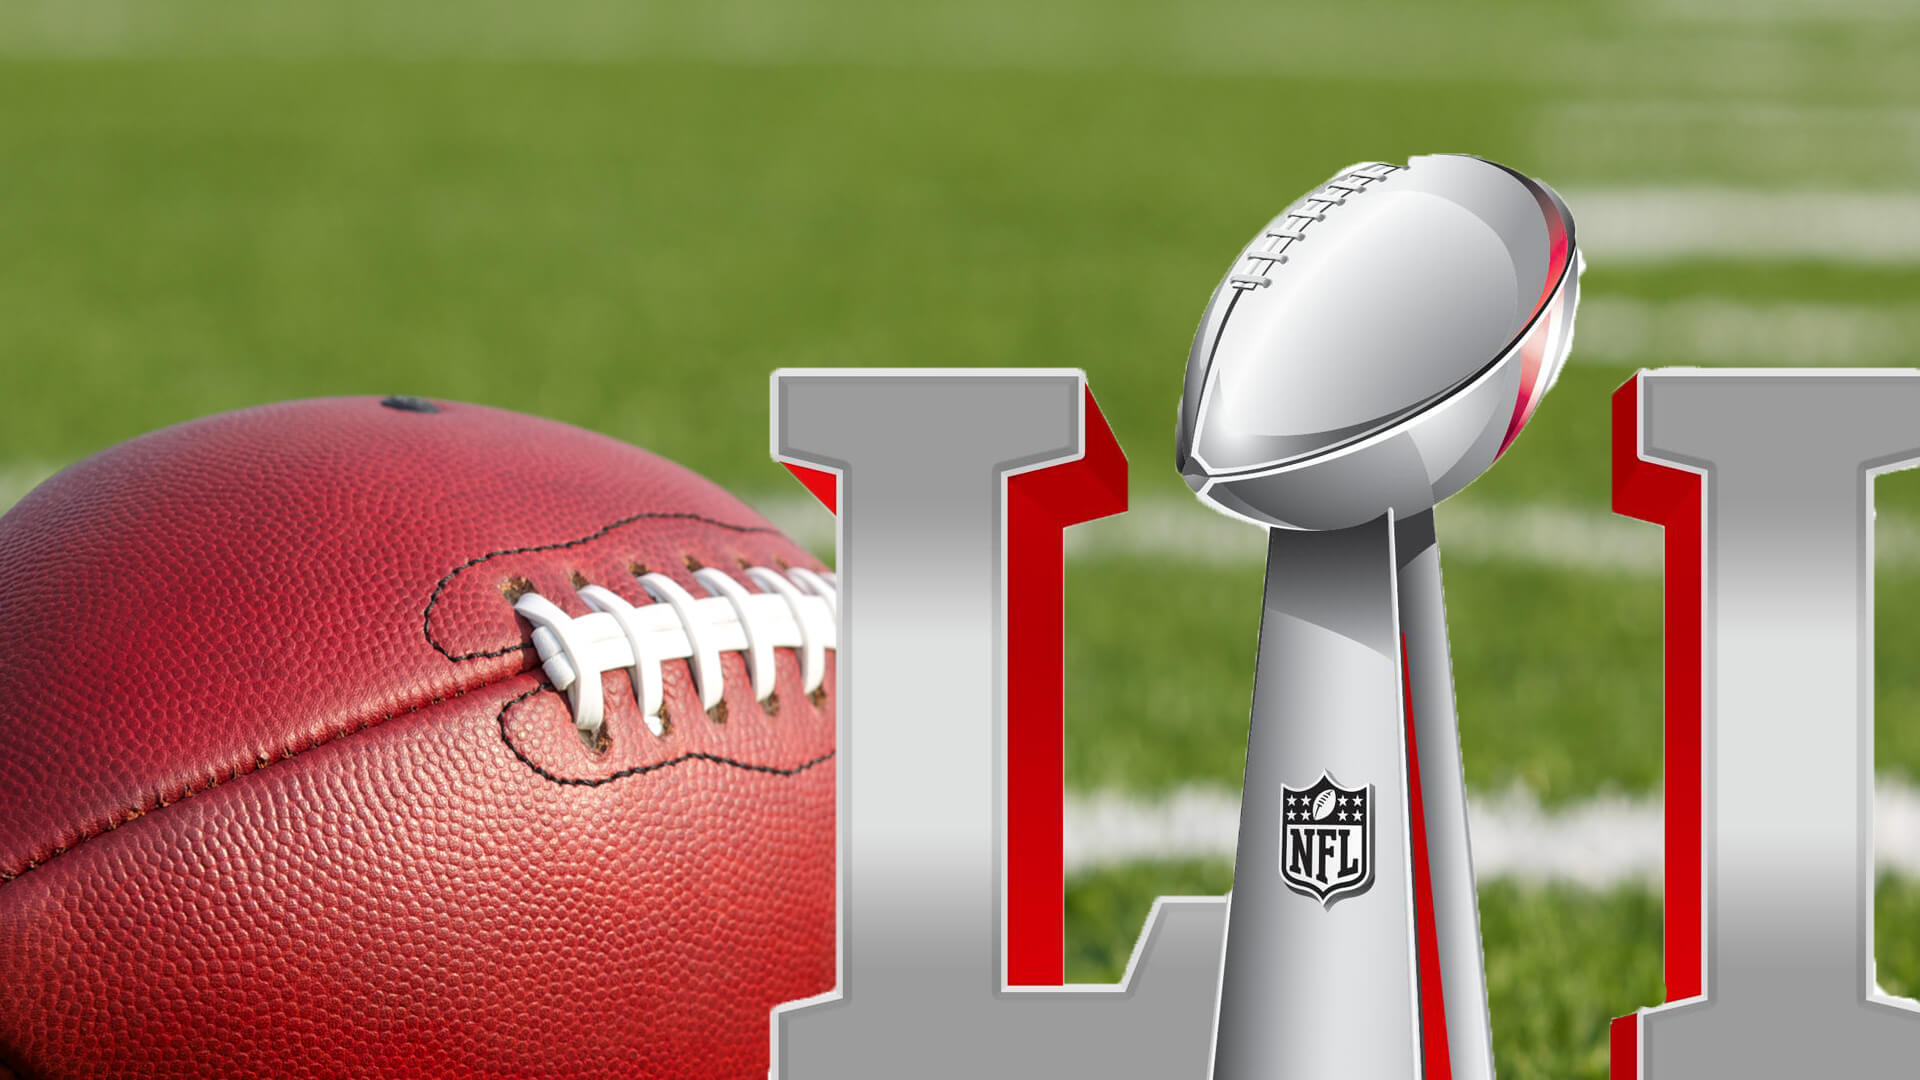 Super Bowl LI teaser ads a no show so far this year with brands keeping campaigns under wraps